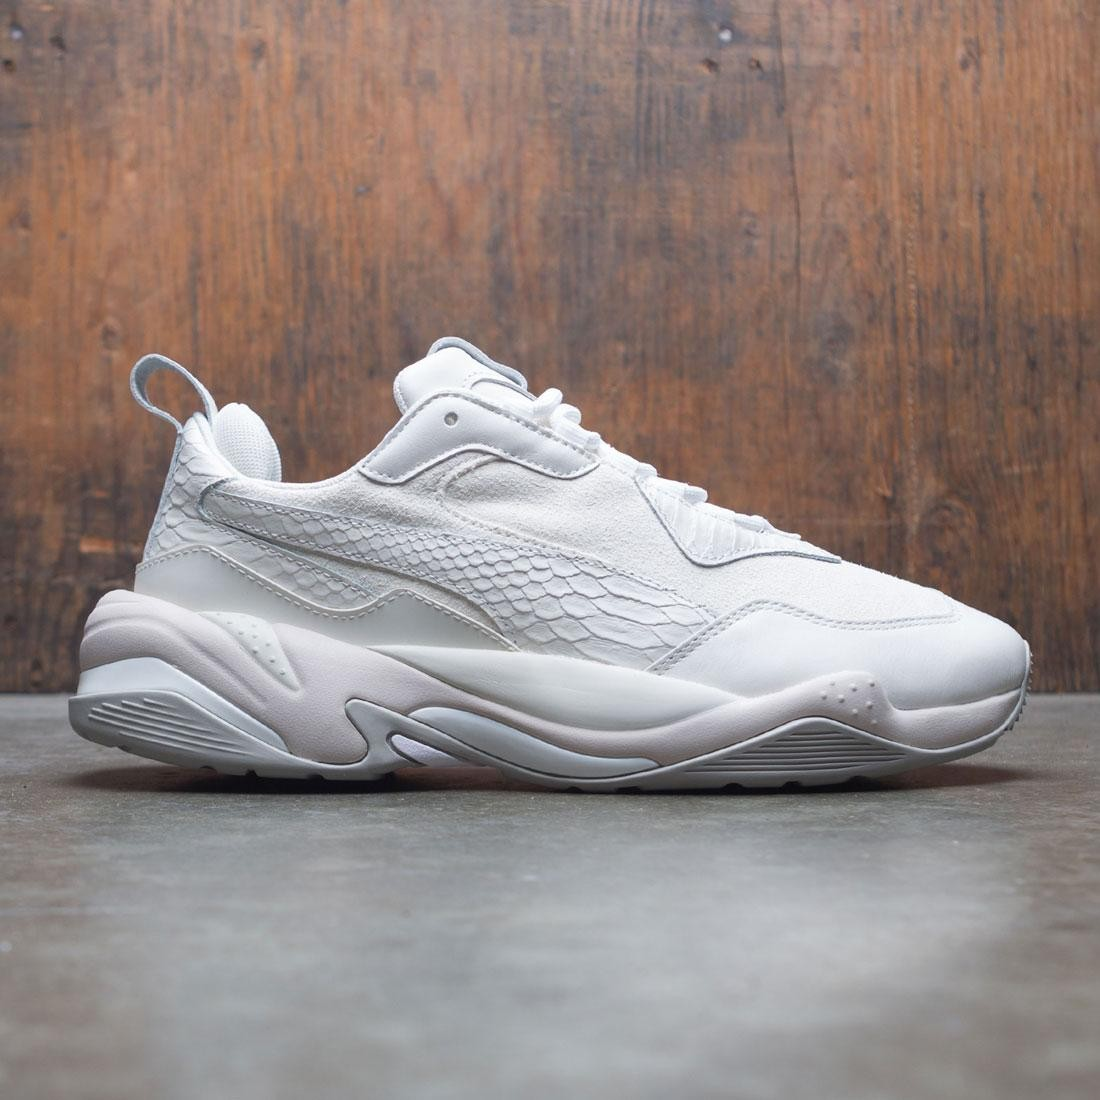 hot sale online b78d9 a3923 Puma Men Thunder Desert white gray violet bright white